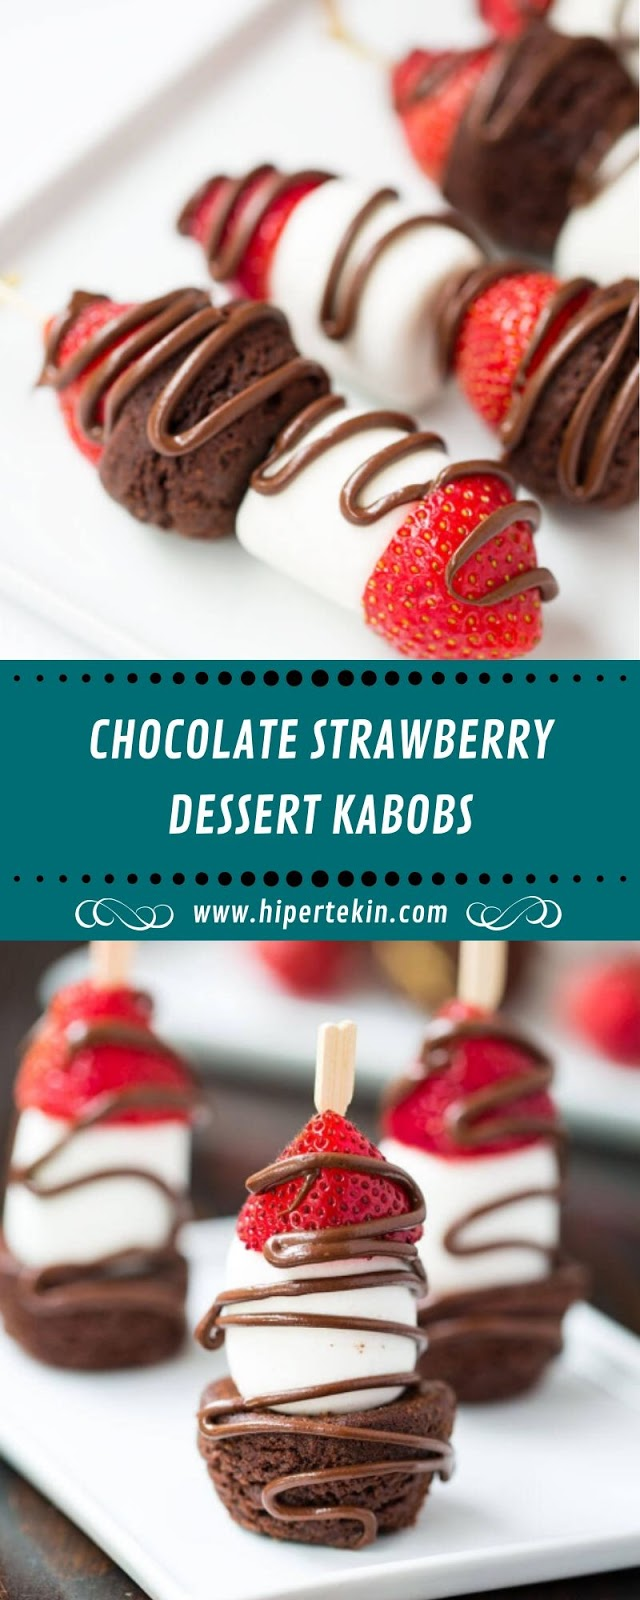 CHOCOLATE STRAWBERRY DESSERT KABOBS